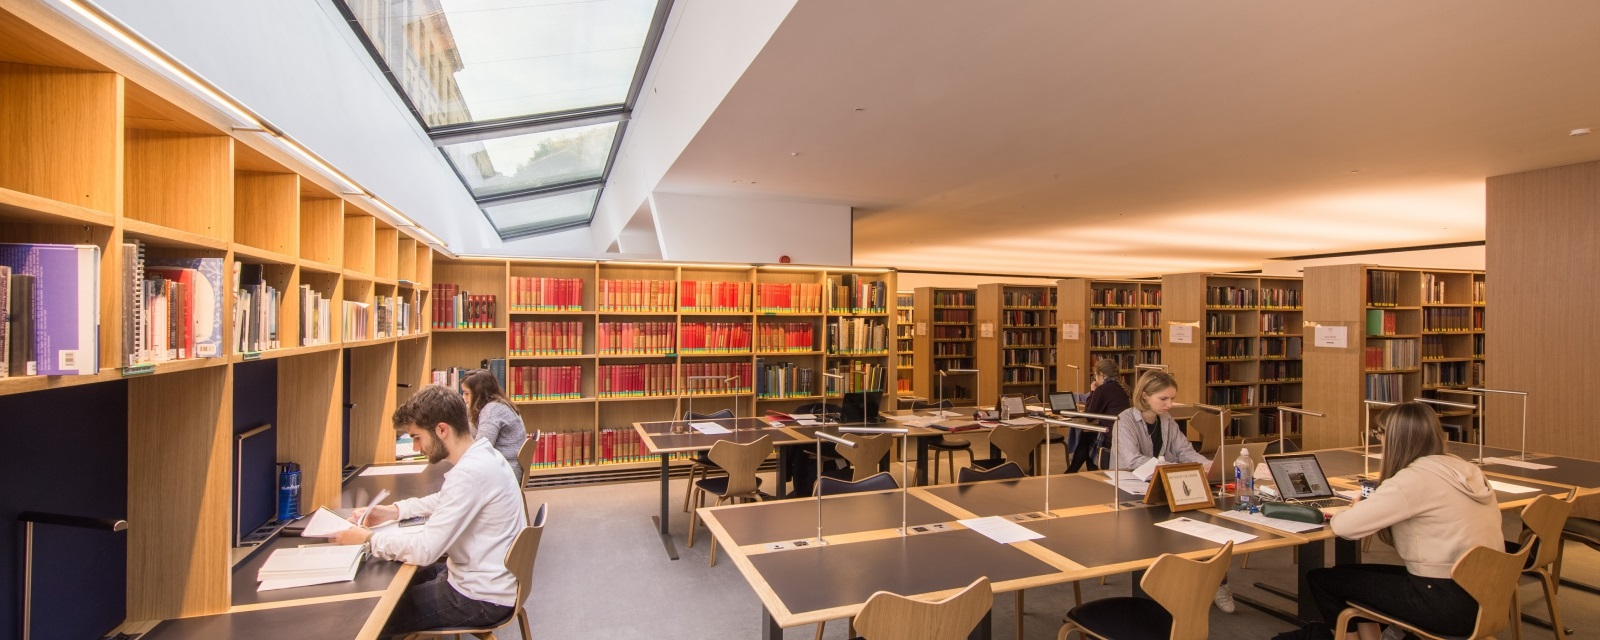 the Ioan James Reading Room at the Queen's College, Oxford